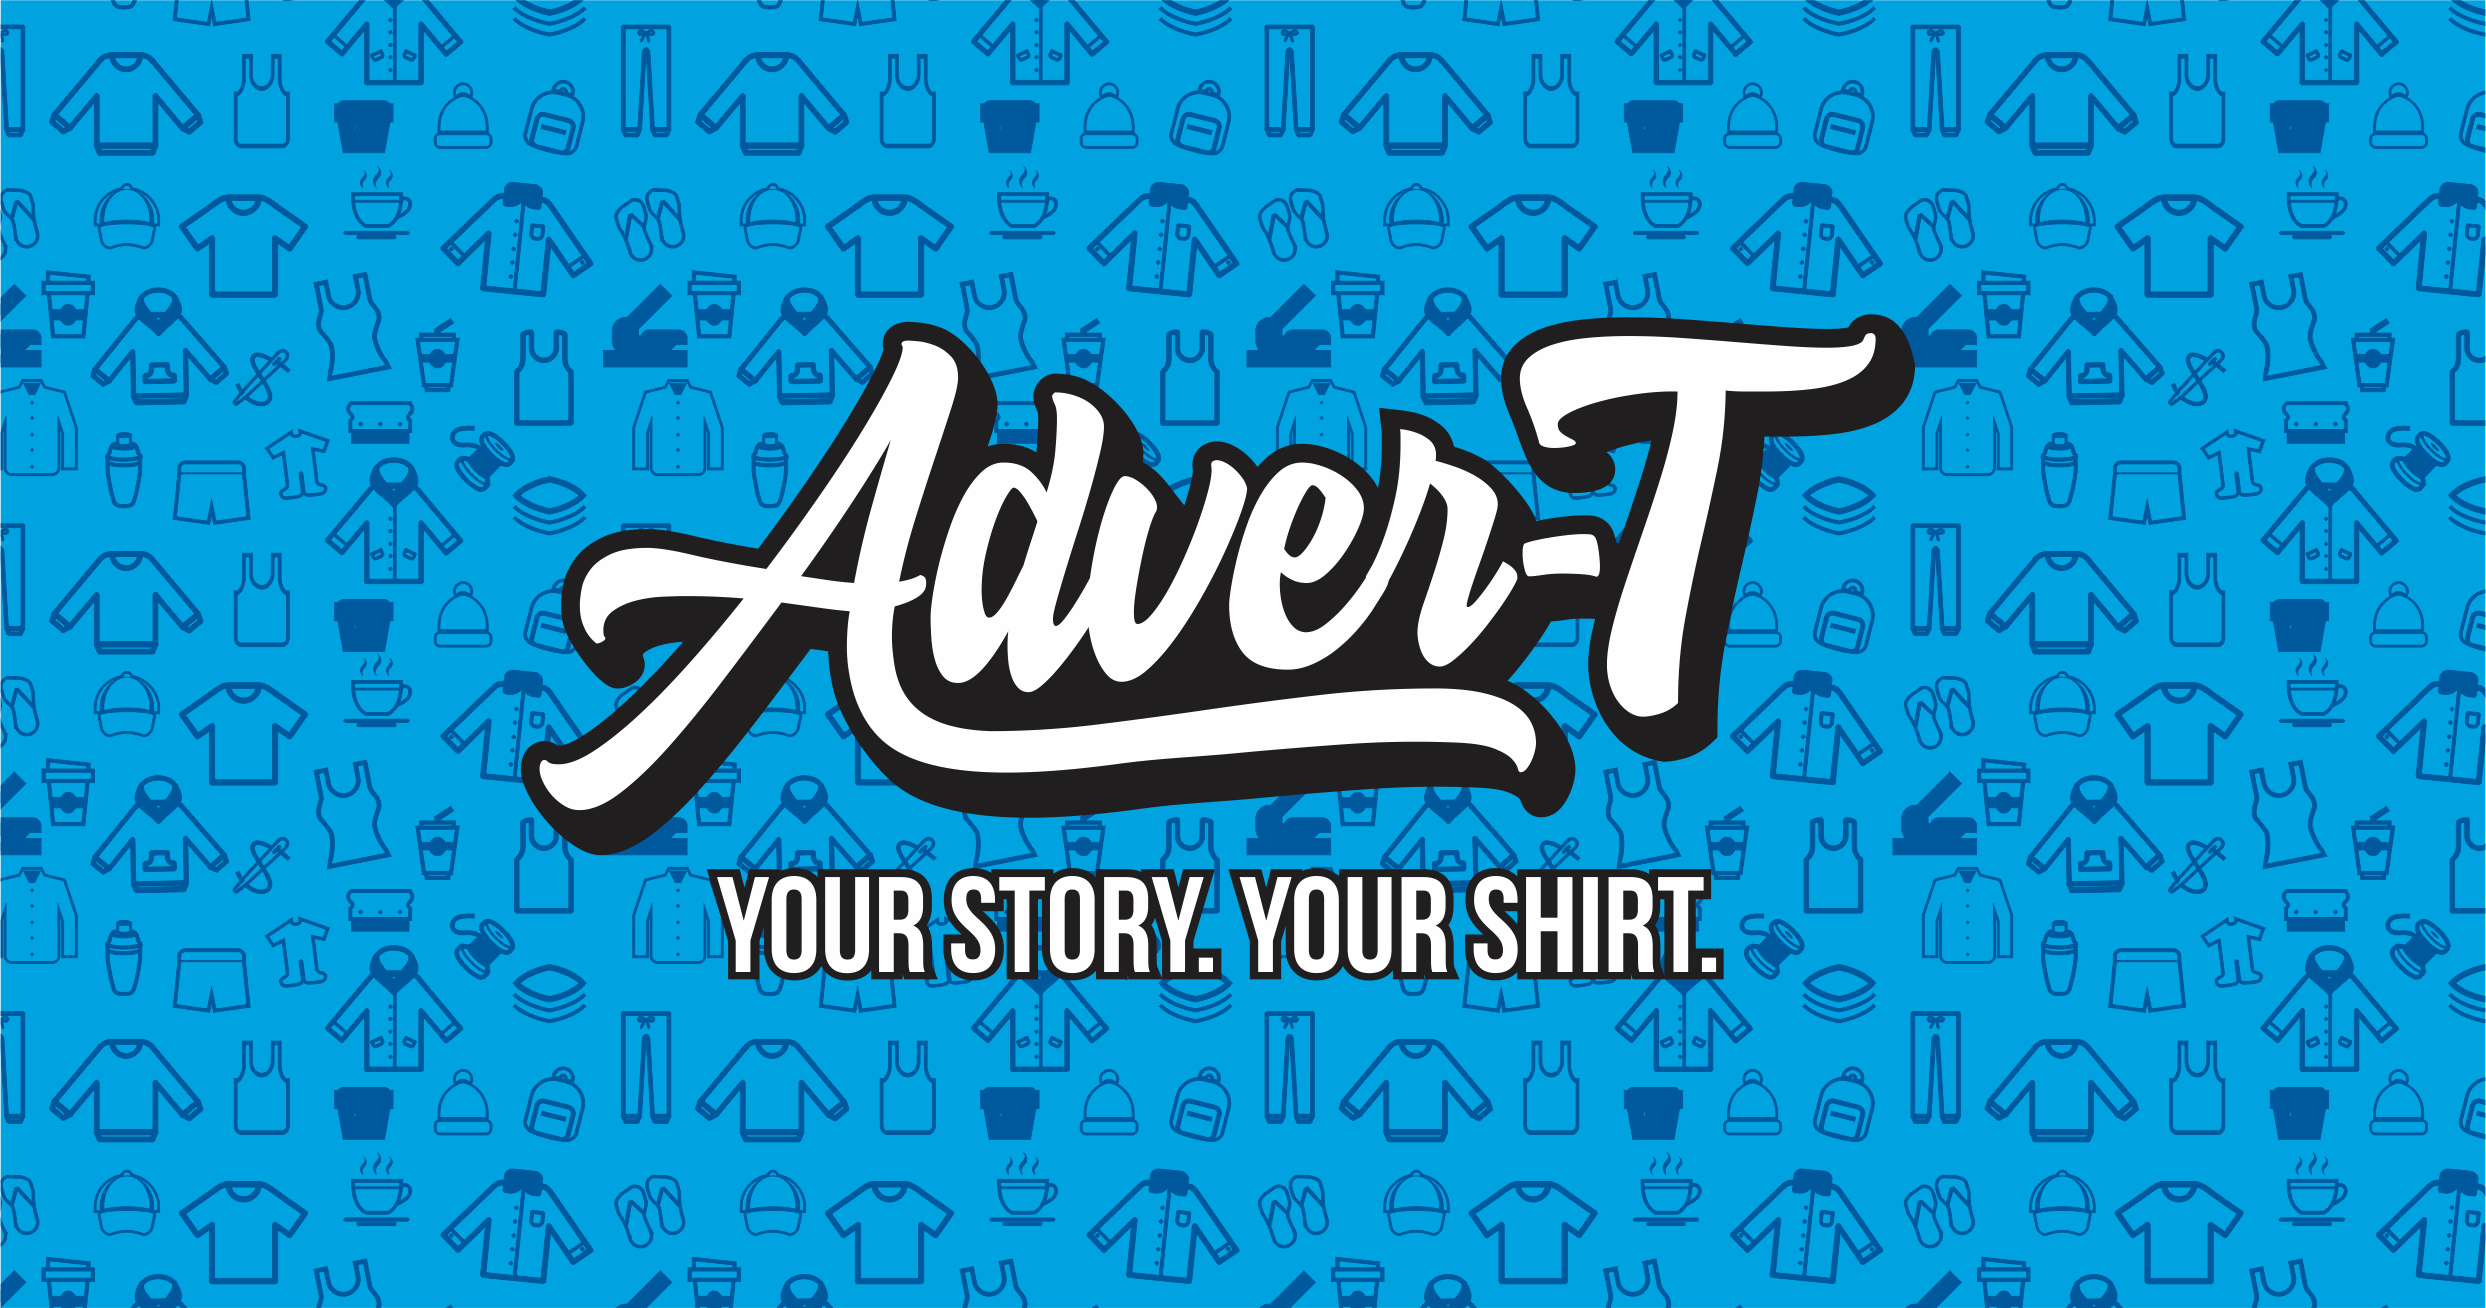 Adver-T Screen Printing & Embroidery reviews | Screen Printing at 408 S Saturn Ave - Clearwater FL